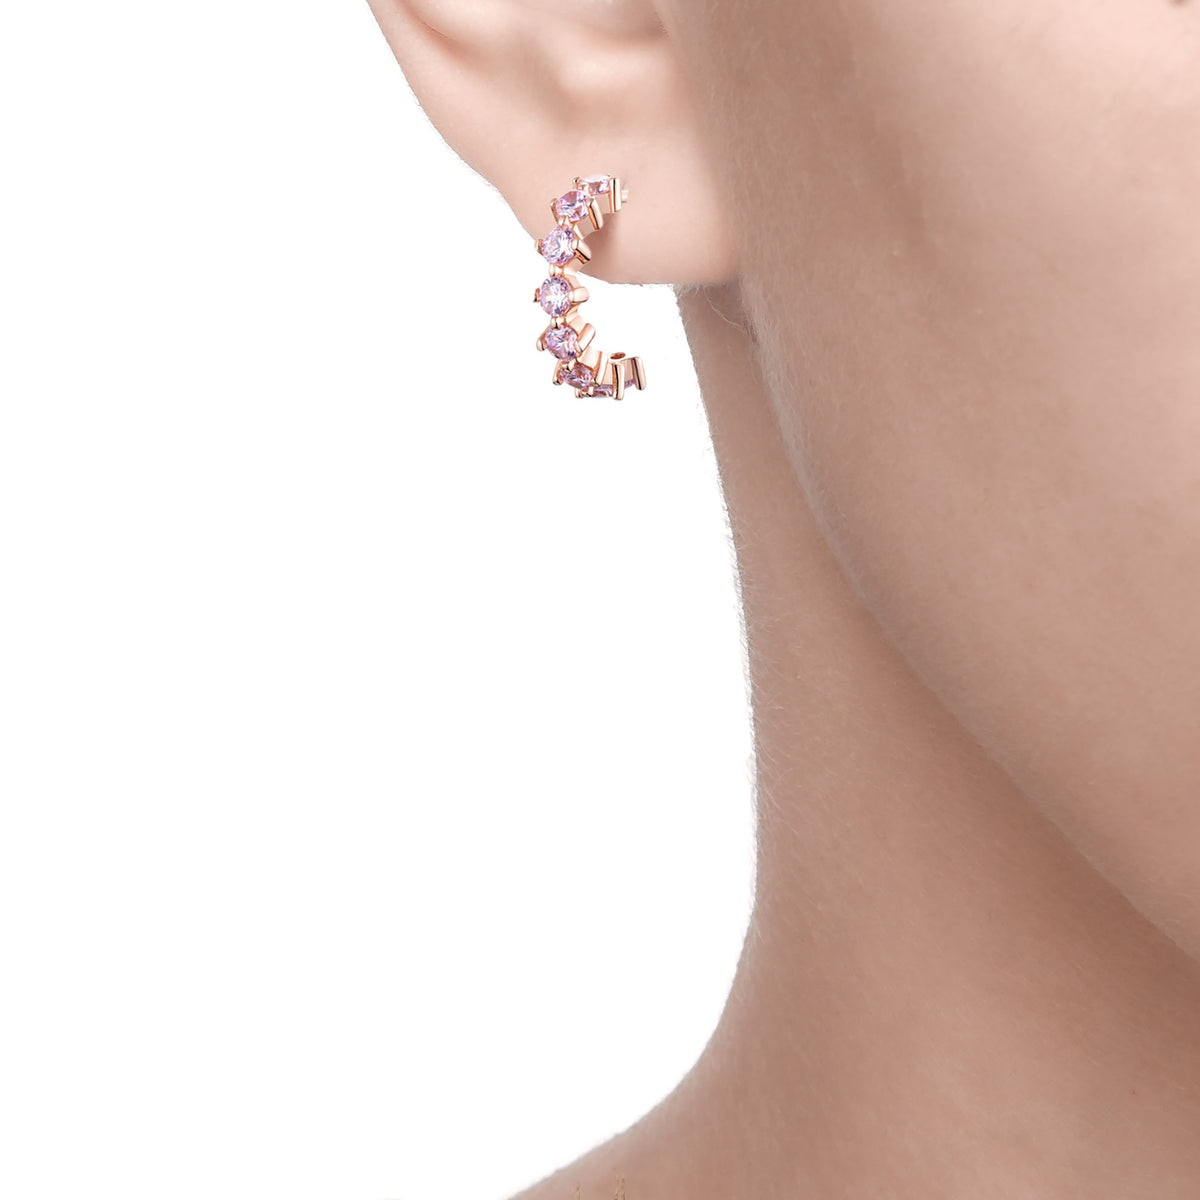 Ferentina | Tiramisu Earrings | 925 Silver | Pink CZ | Rose Gold Plated